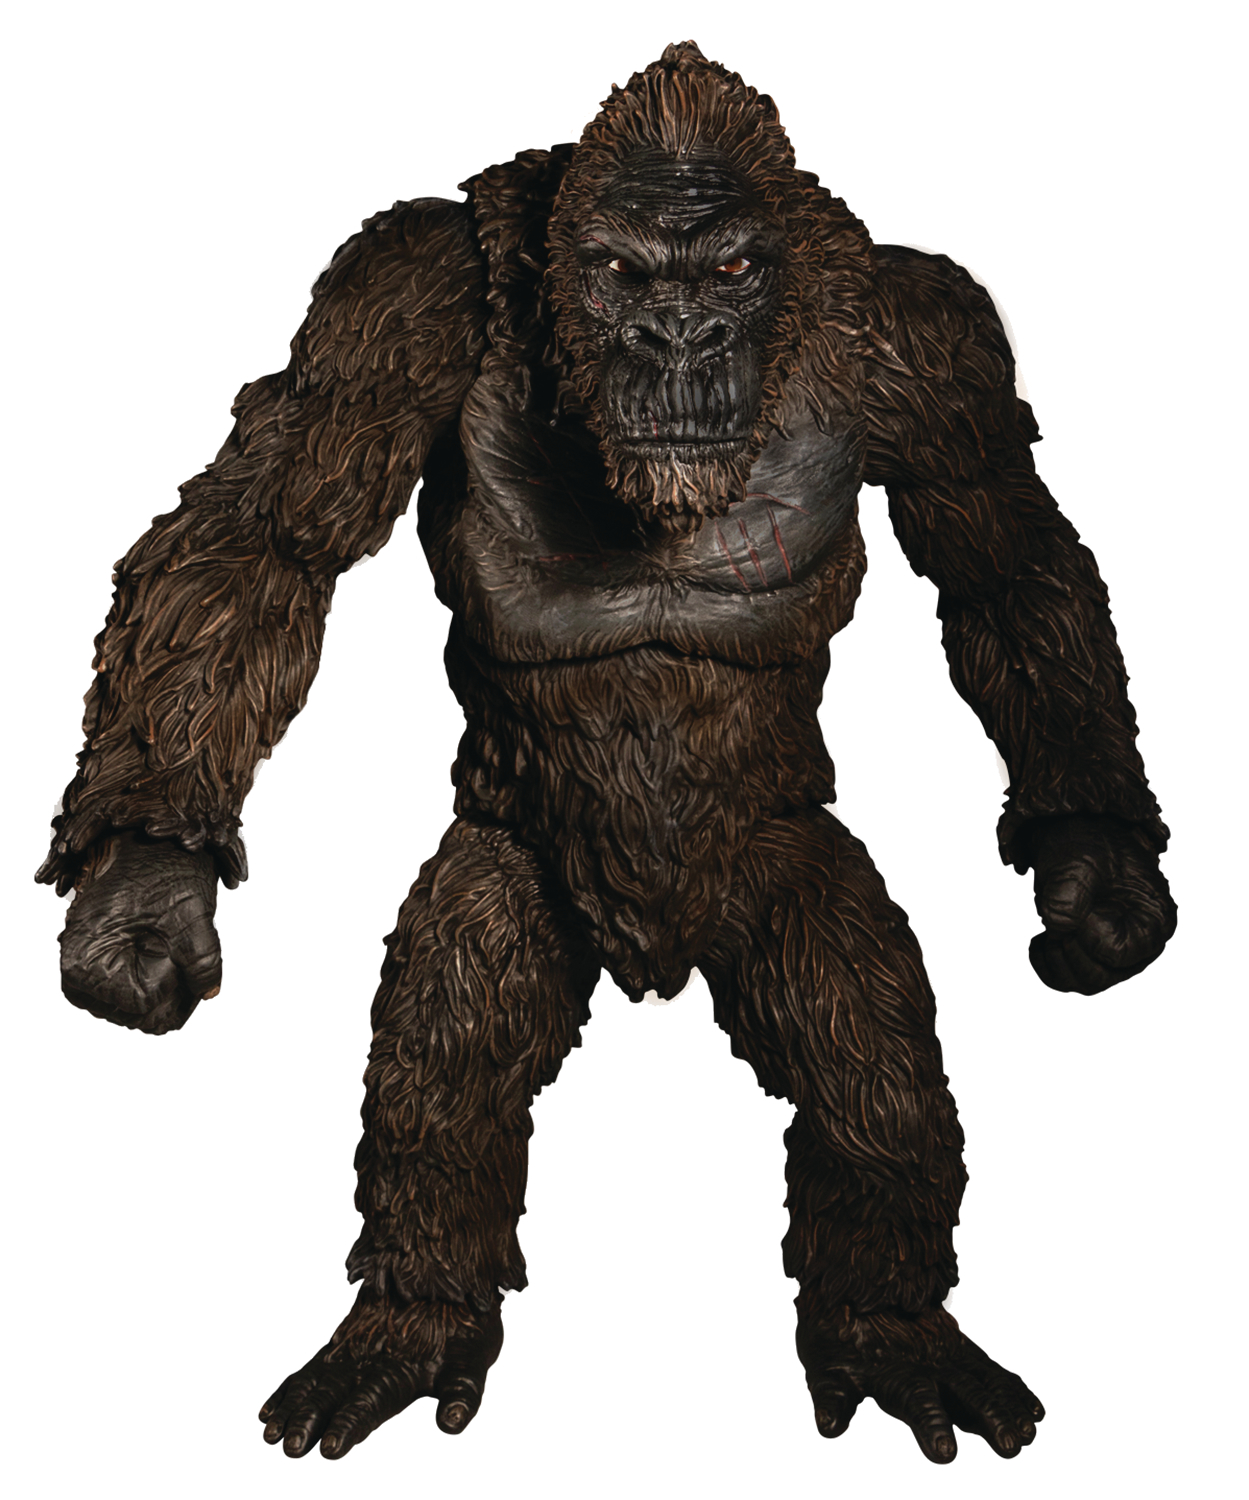 ULTIMATE KING KONG OF SKULL ISLAND 18 INCH ACTION FIGURE (AP